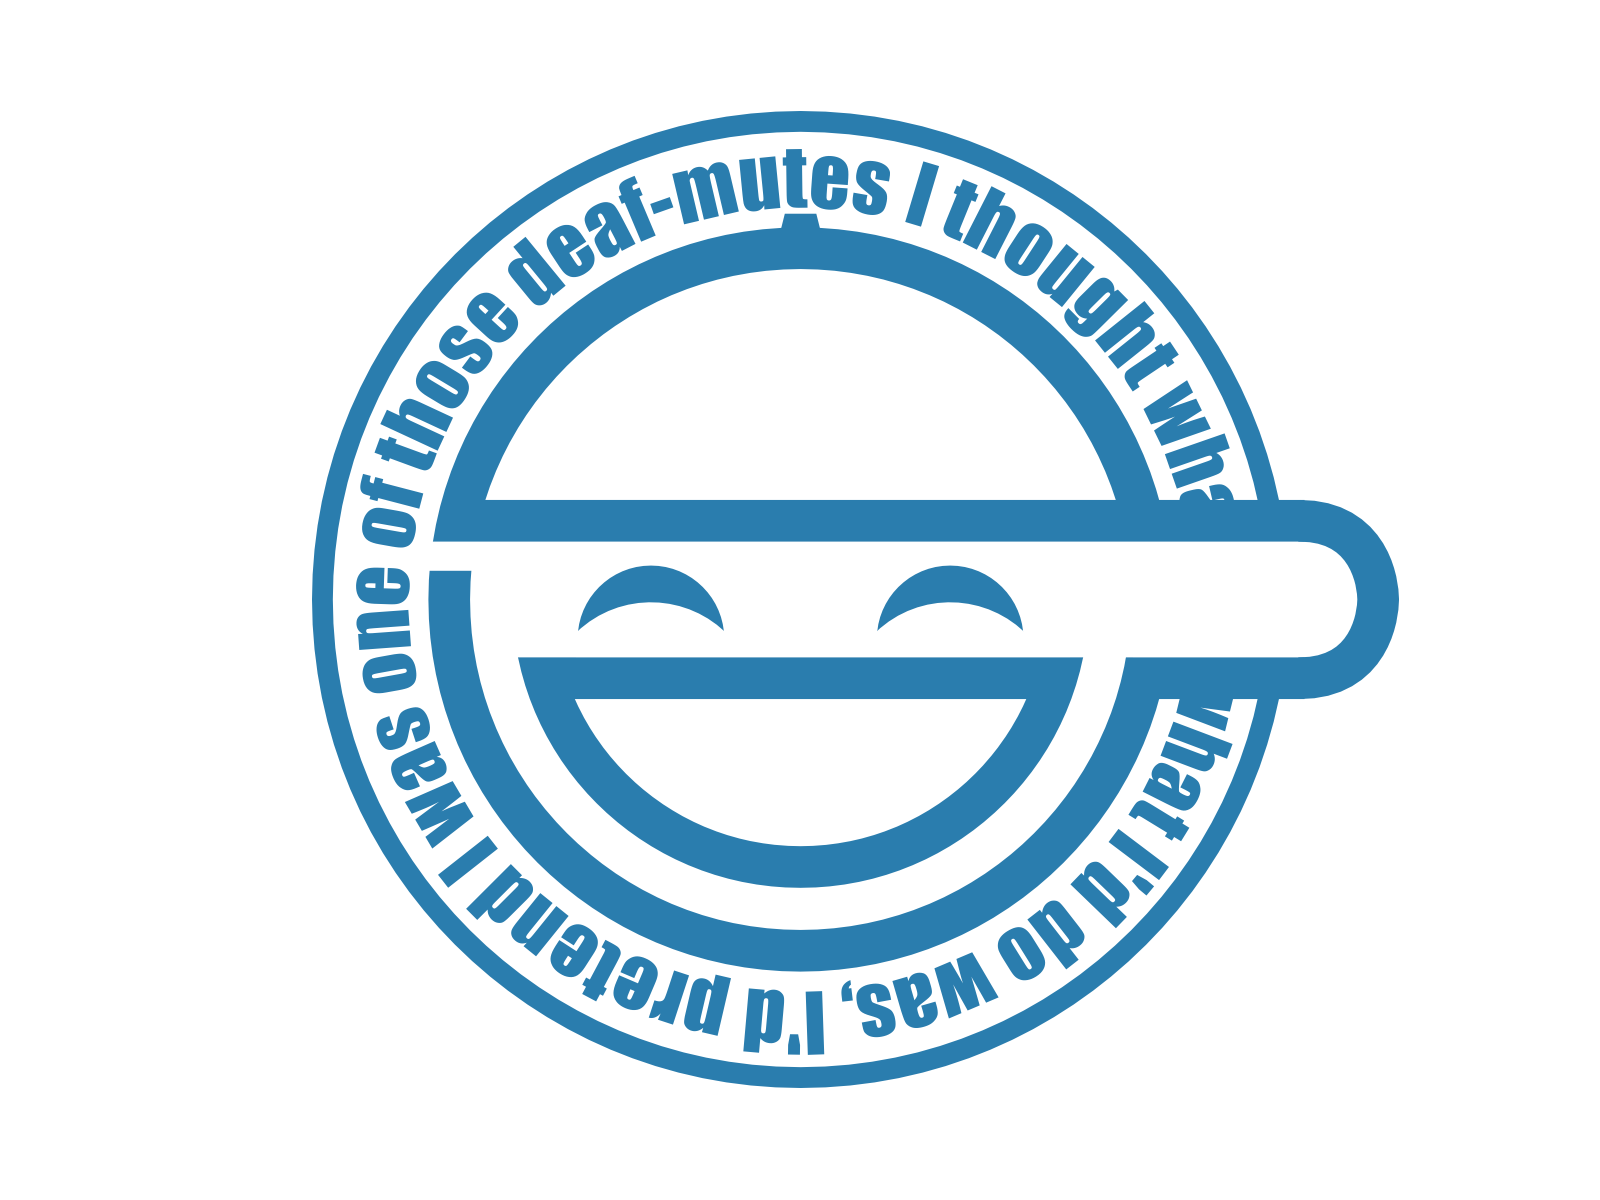 laughing man logo - photo #11